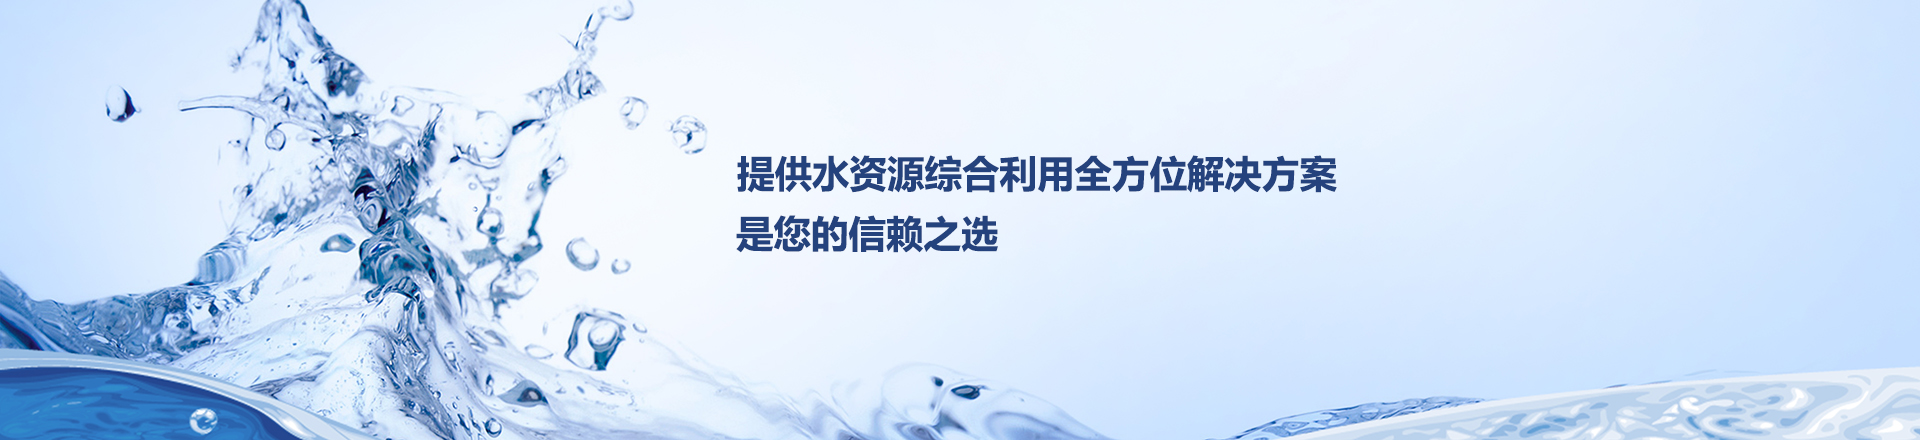 https://www.dschn.cn/data/upload/202004/20200403182216_701.jpg